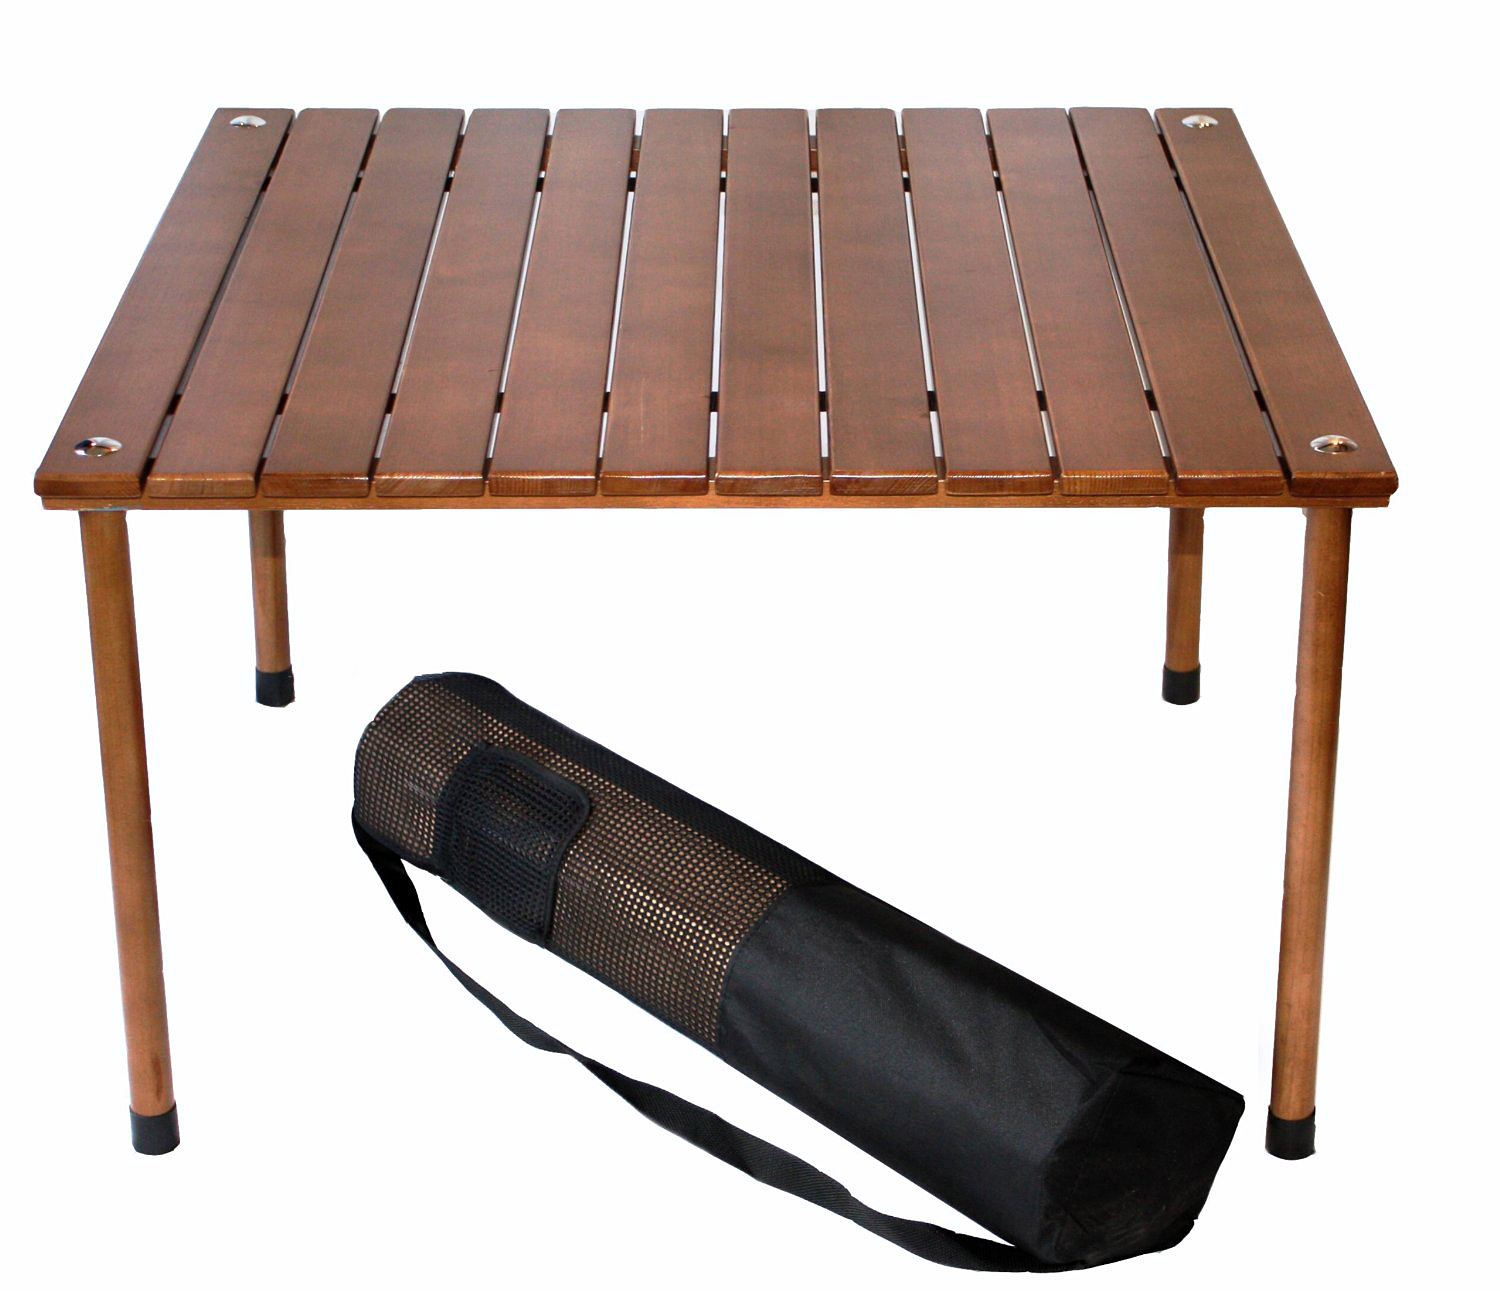 Wood Portable Table to Go